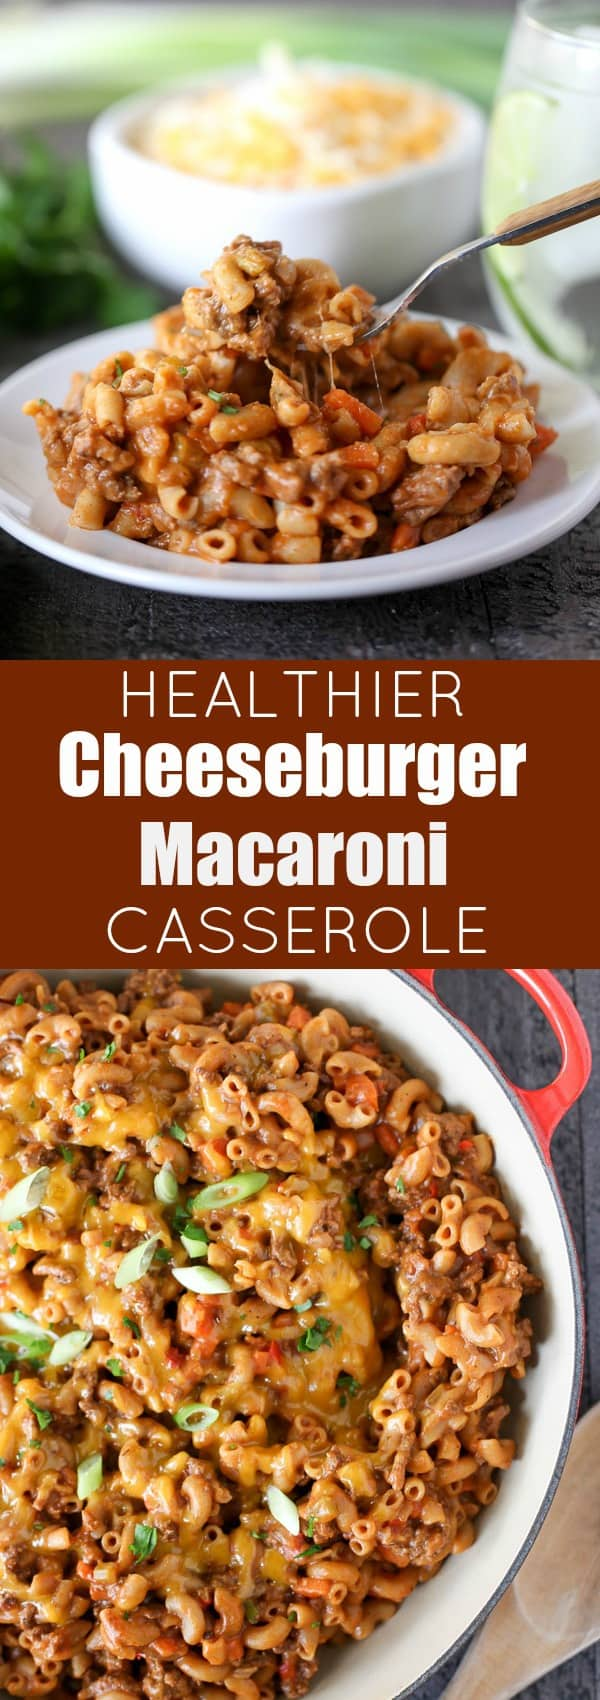 Healthier Cheeseburger Macaroni Casserole - Healthy comfort food, made in one pot in 30 minutes!